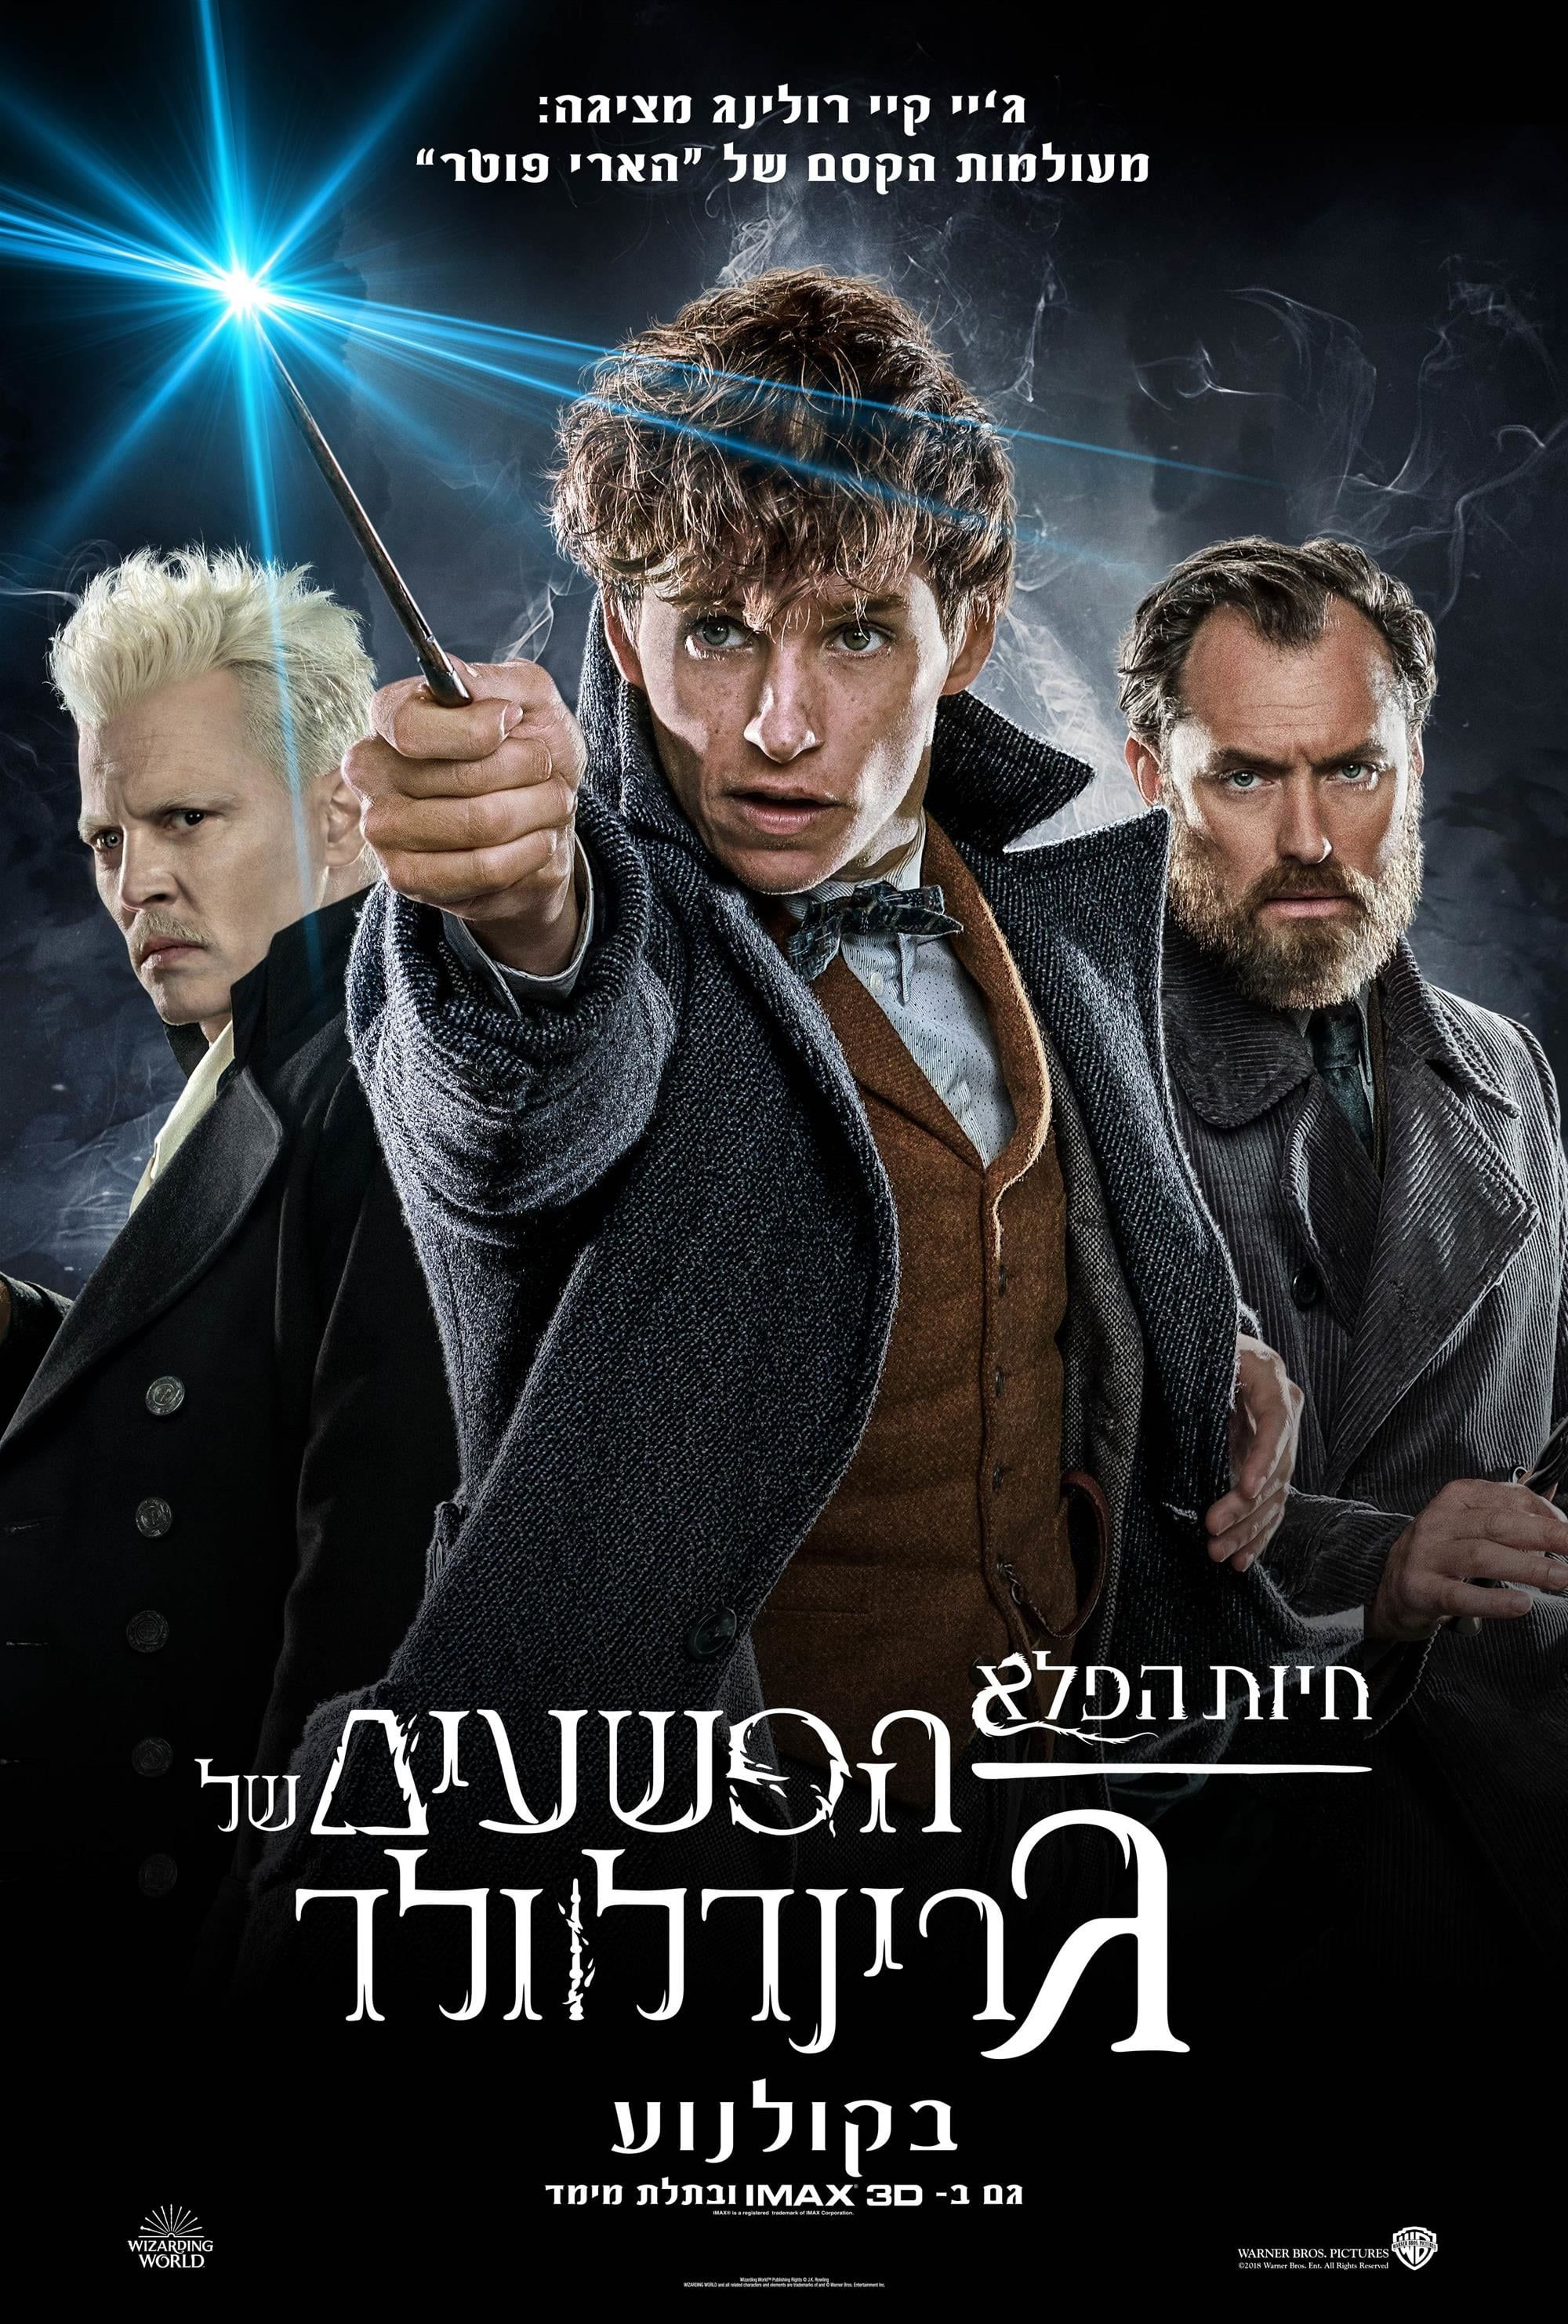 fantastic beasts the crimes of grindelwald full movie free download